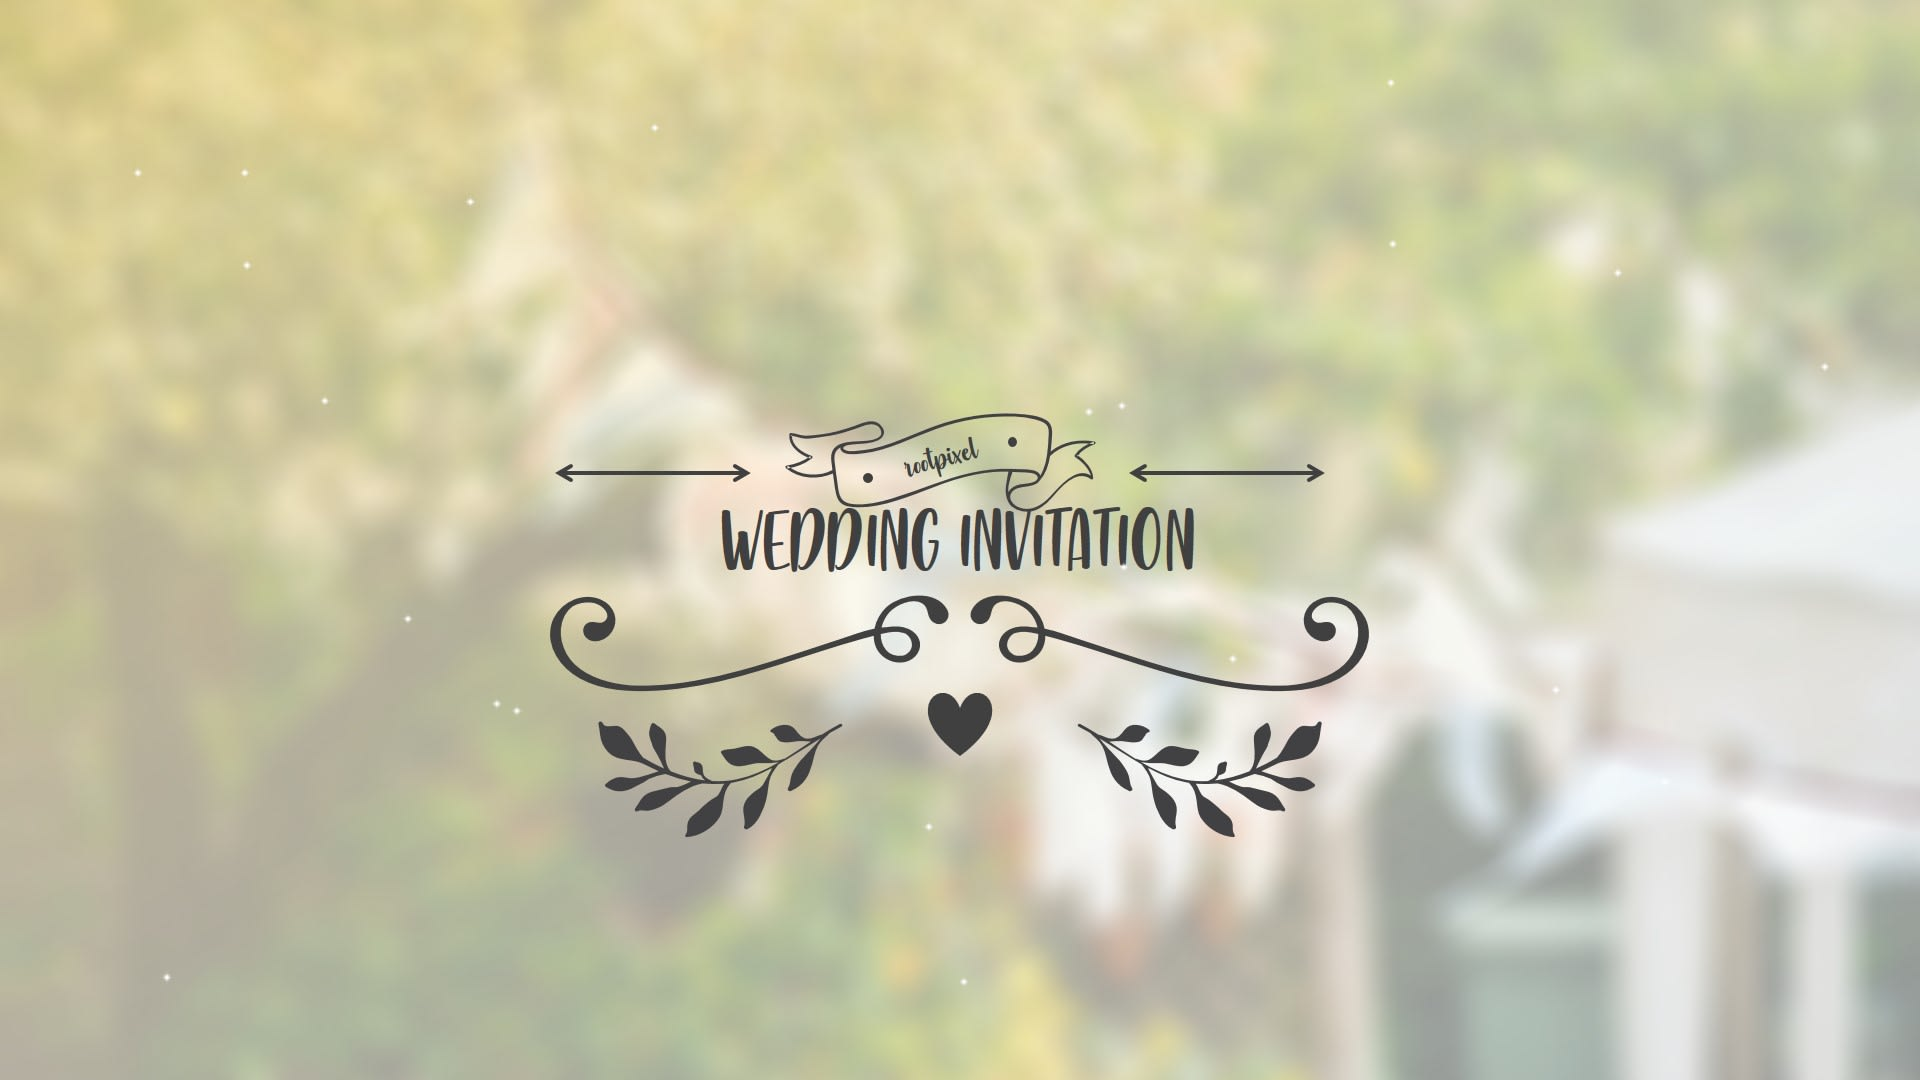 Do wedding invitation video within 48 hour by Chulrachul